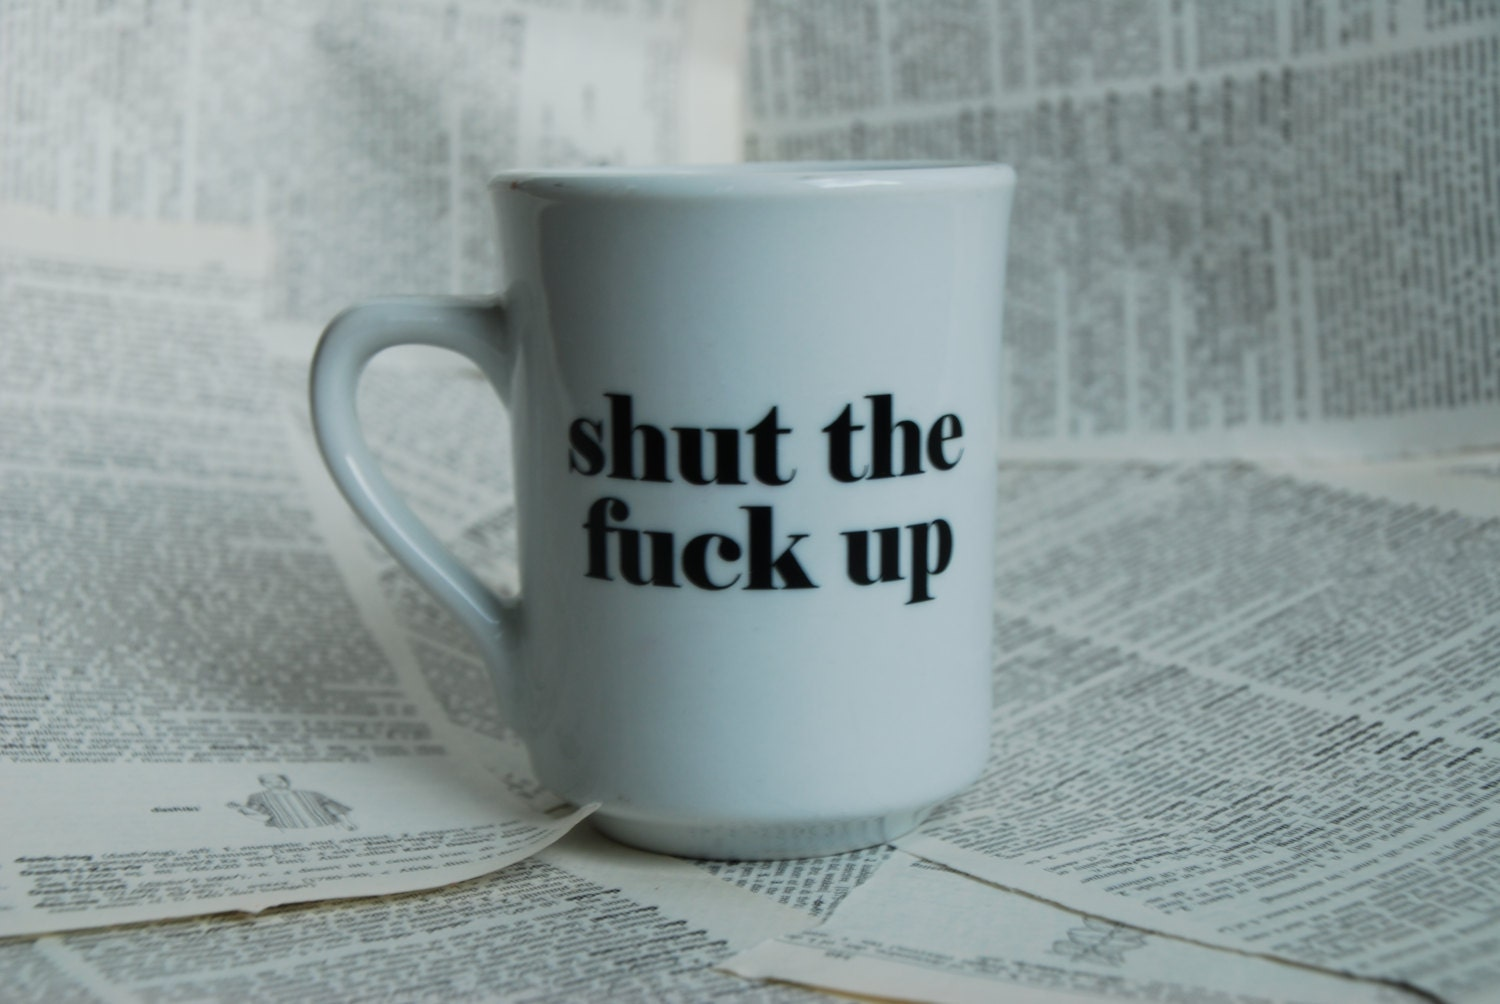 MATURE Rego Shut The Fuck Up Mature Teacup/Mug